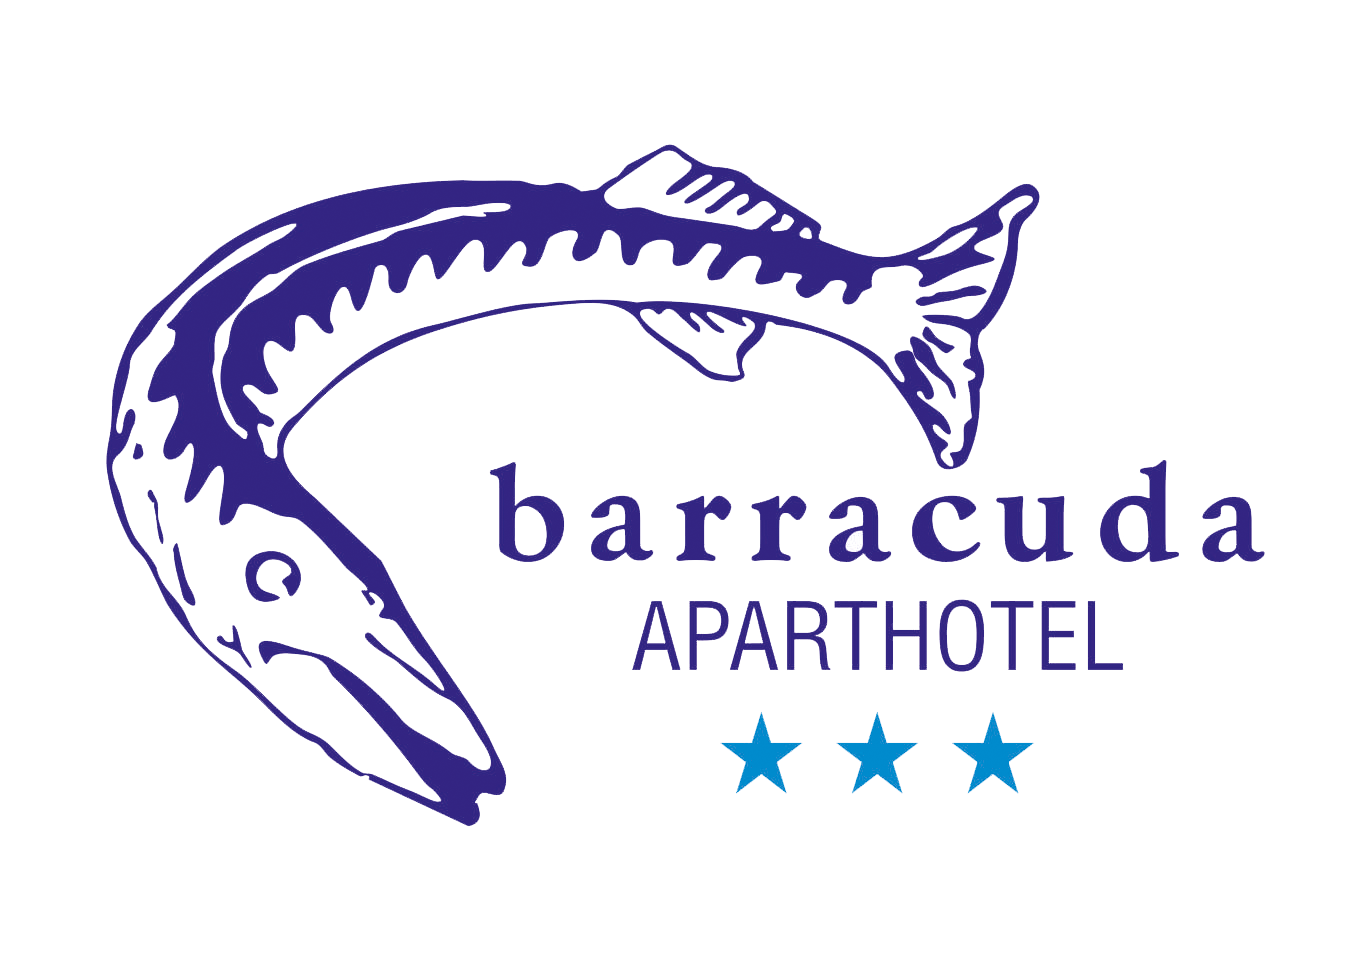 Barracuda Aparthotel